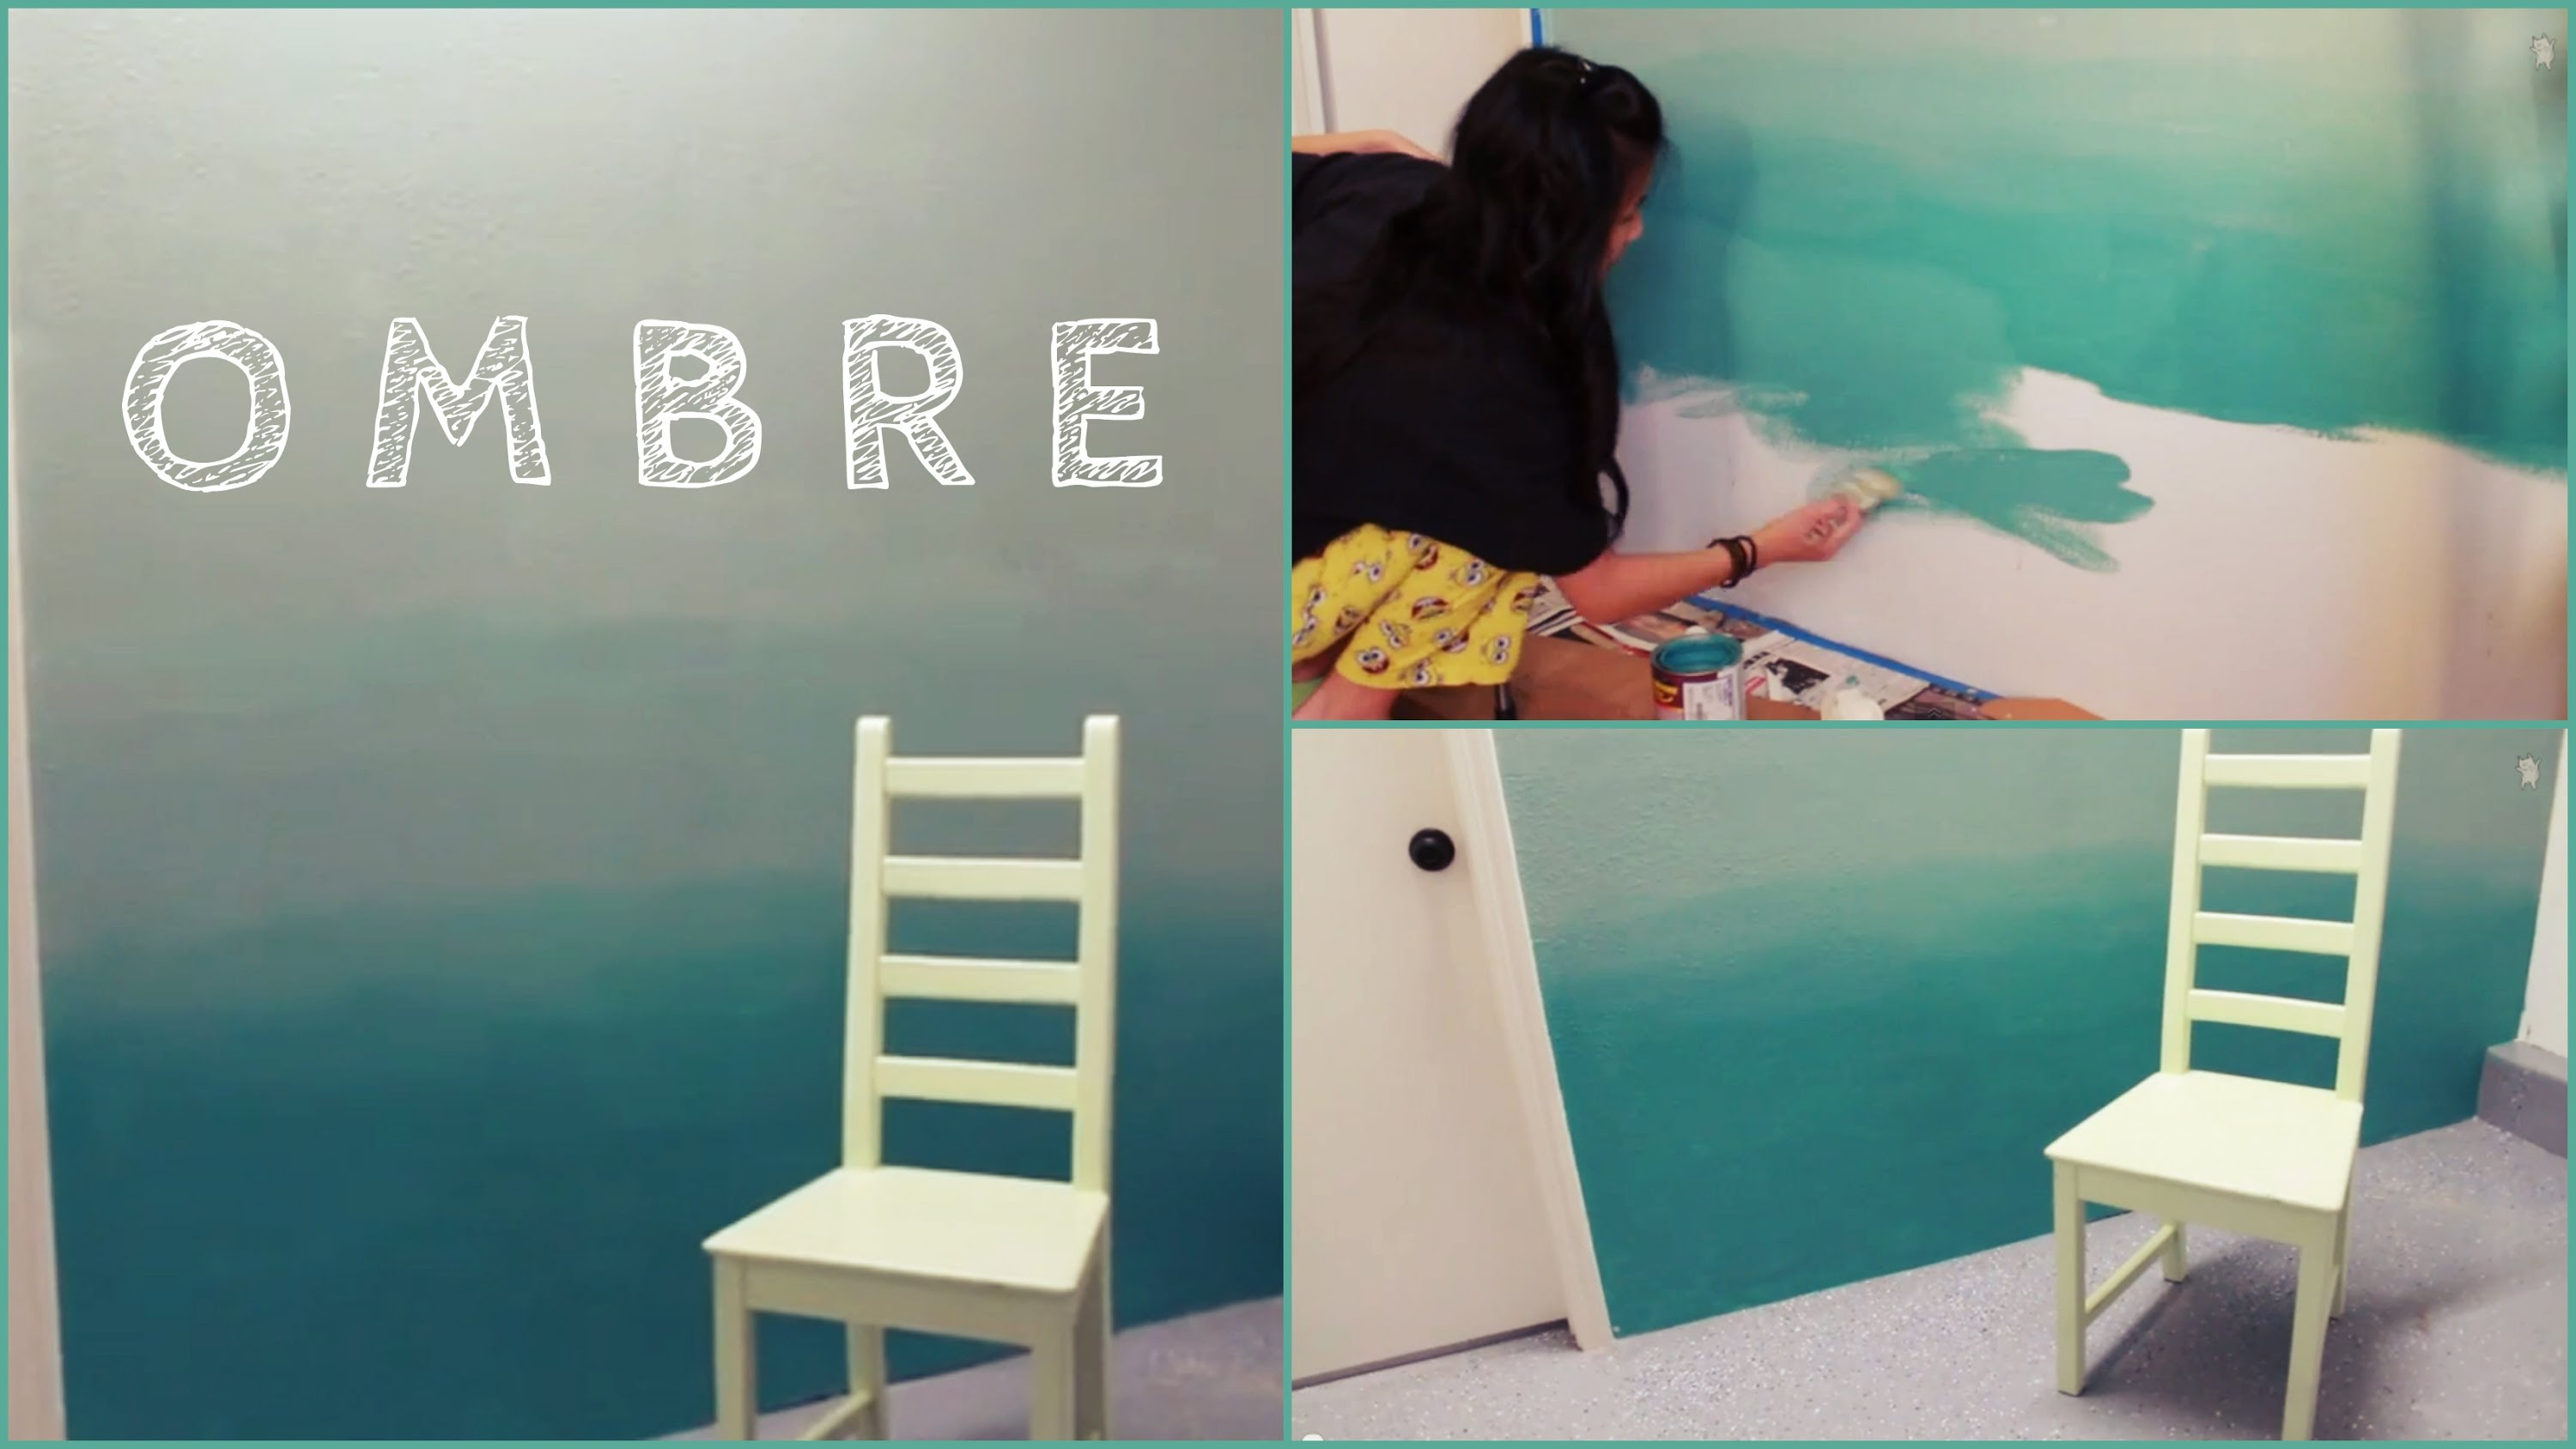 Inspirational Diy: Ombre Wall | How To Paint & Tips! - Youtube for Diy Wall Painting Ideas